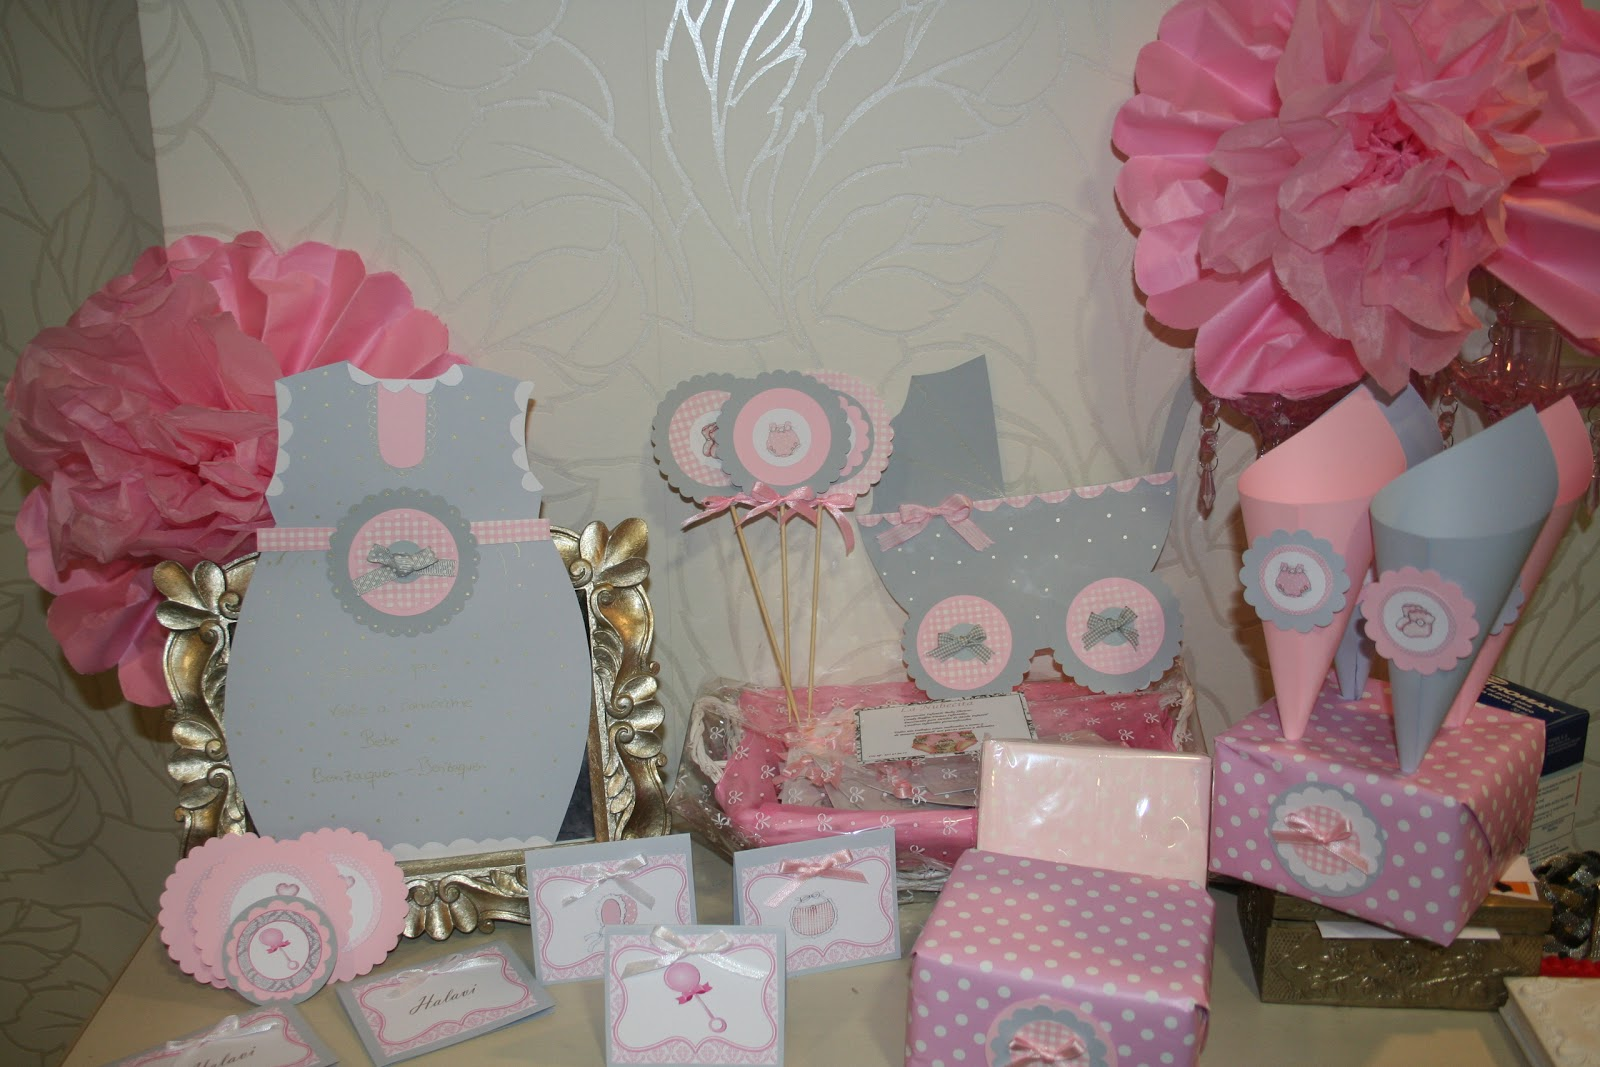 Decoraciones para baby shower decoracion mesa nina - Decoracion de mesas ...